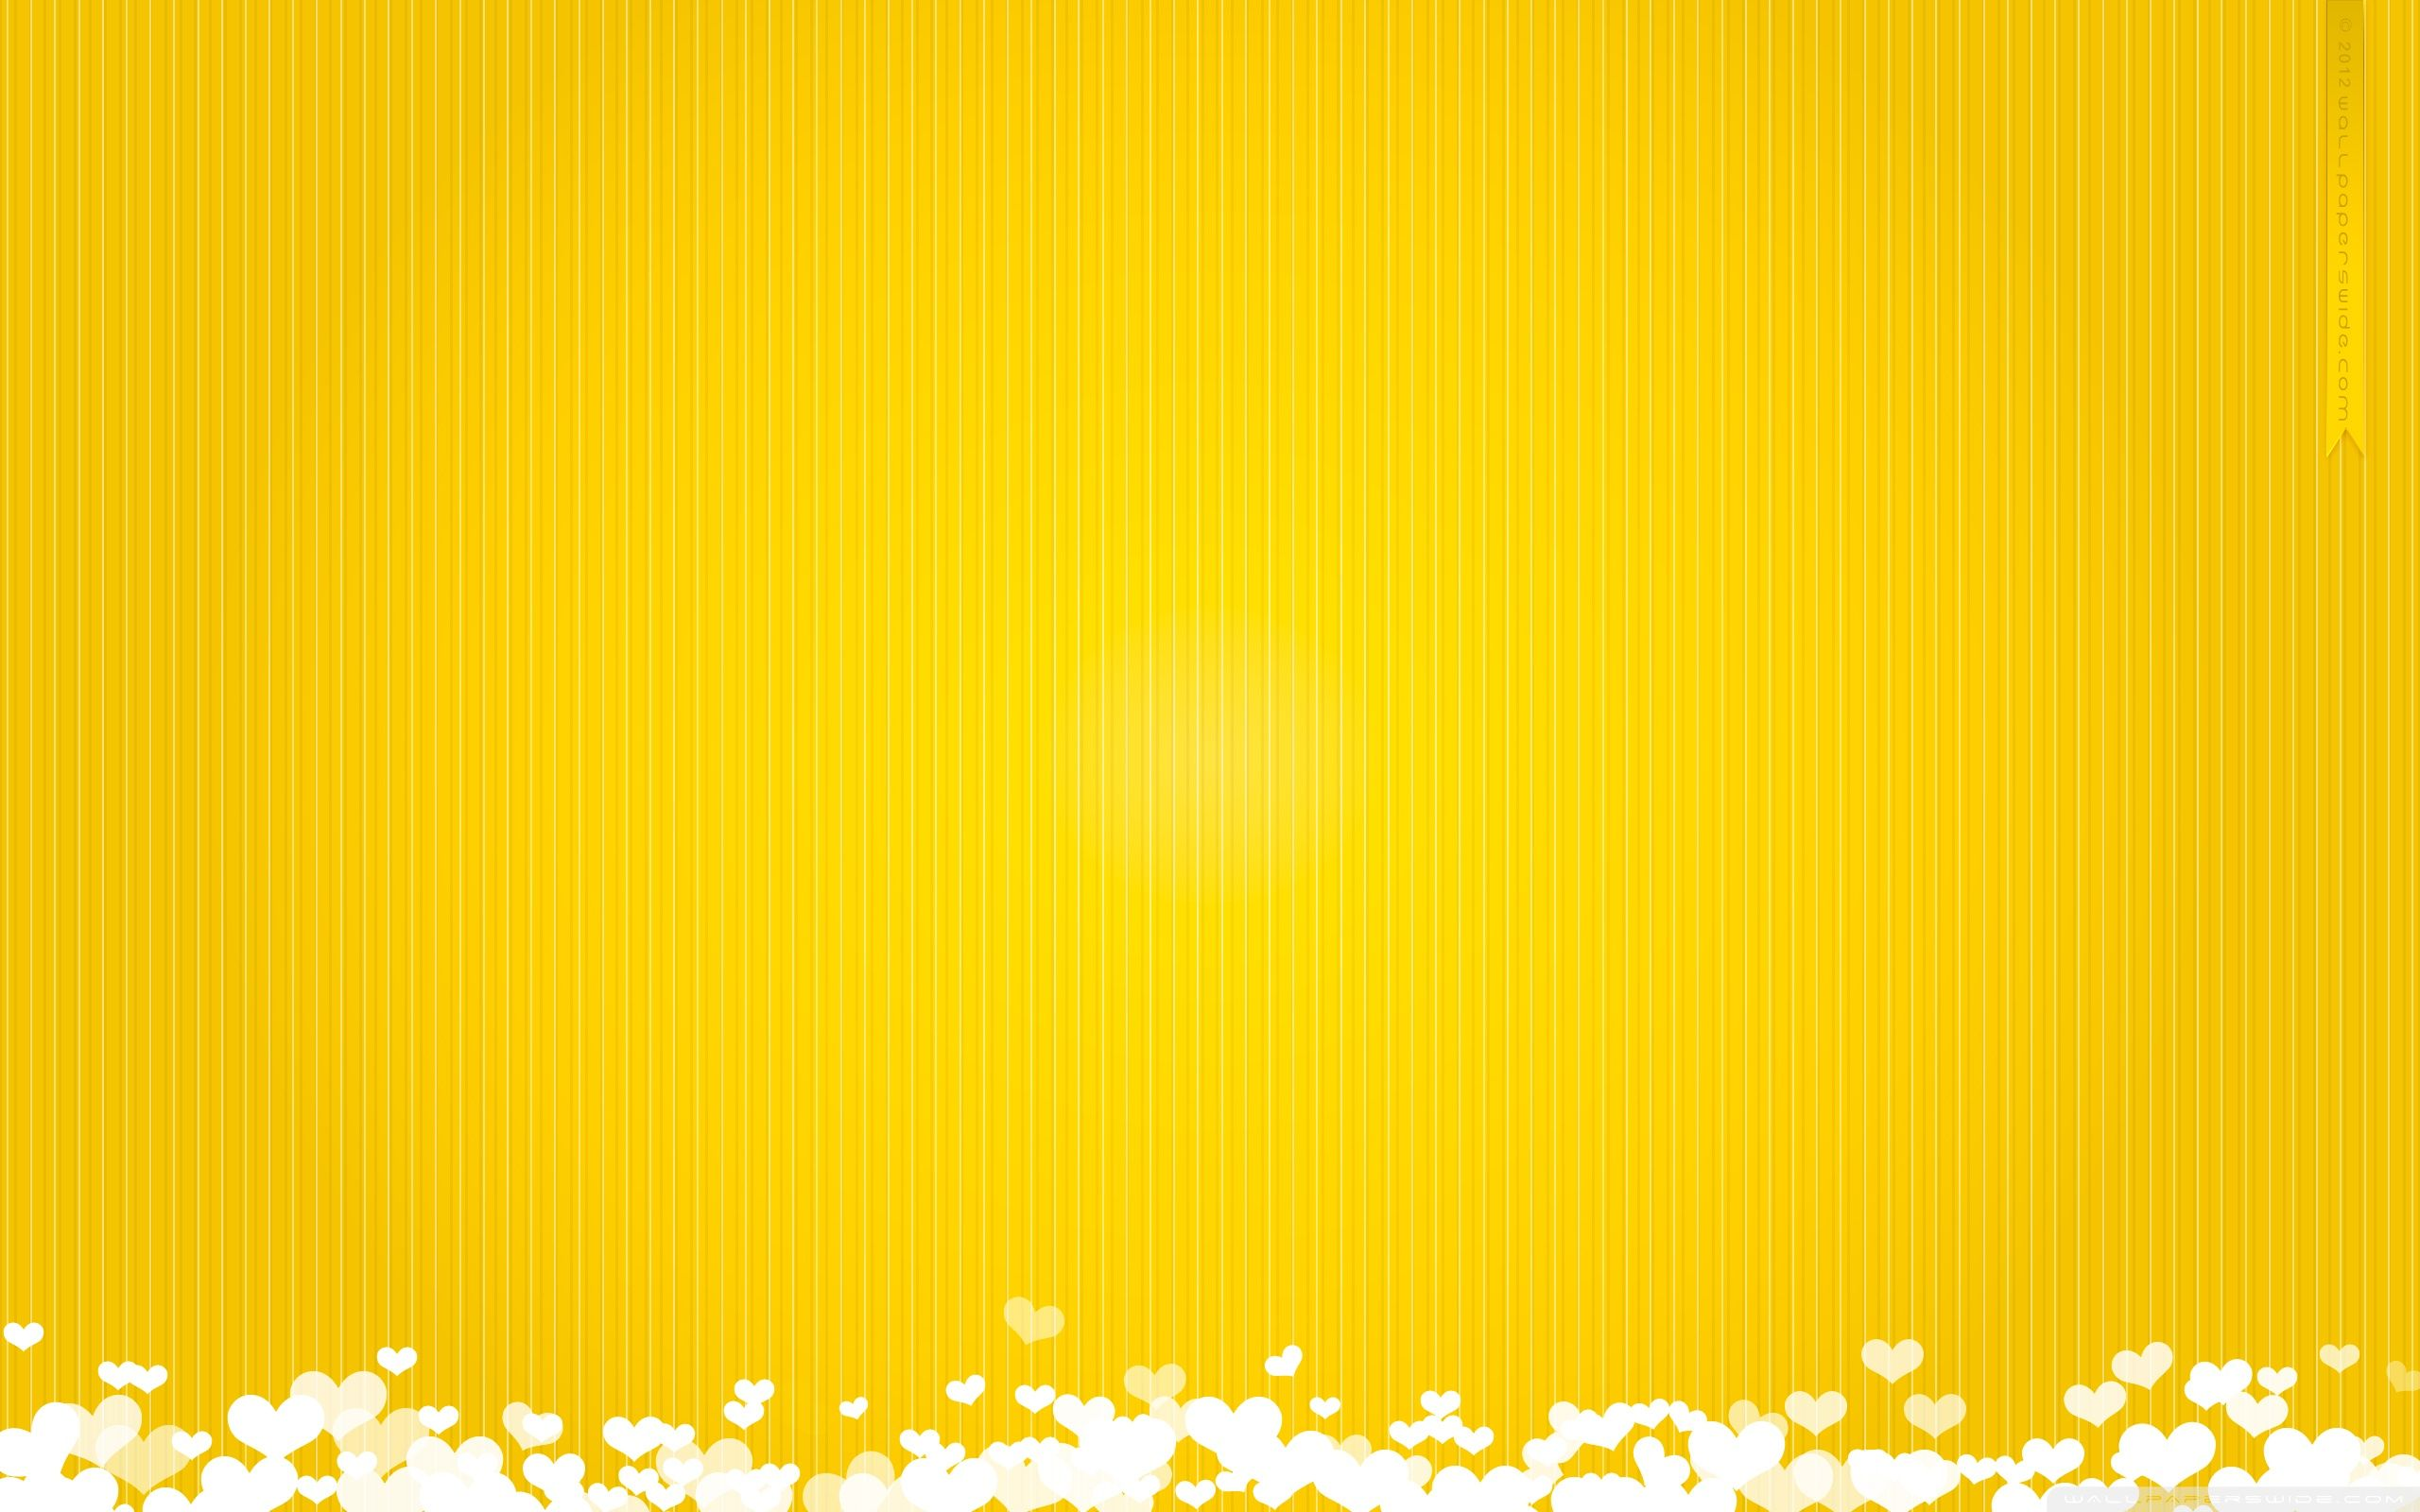 Yellow Wallpaper Abstract Yellow wallpaper, Abstract